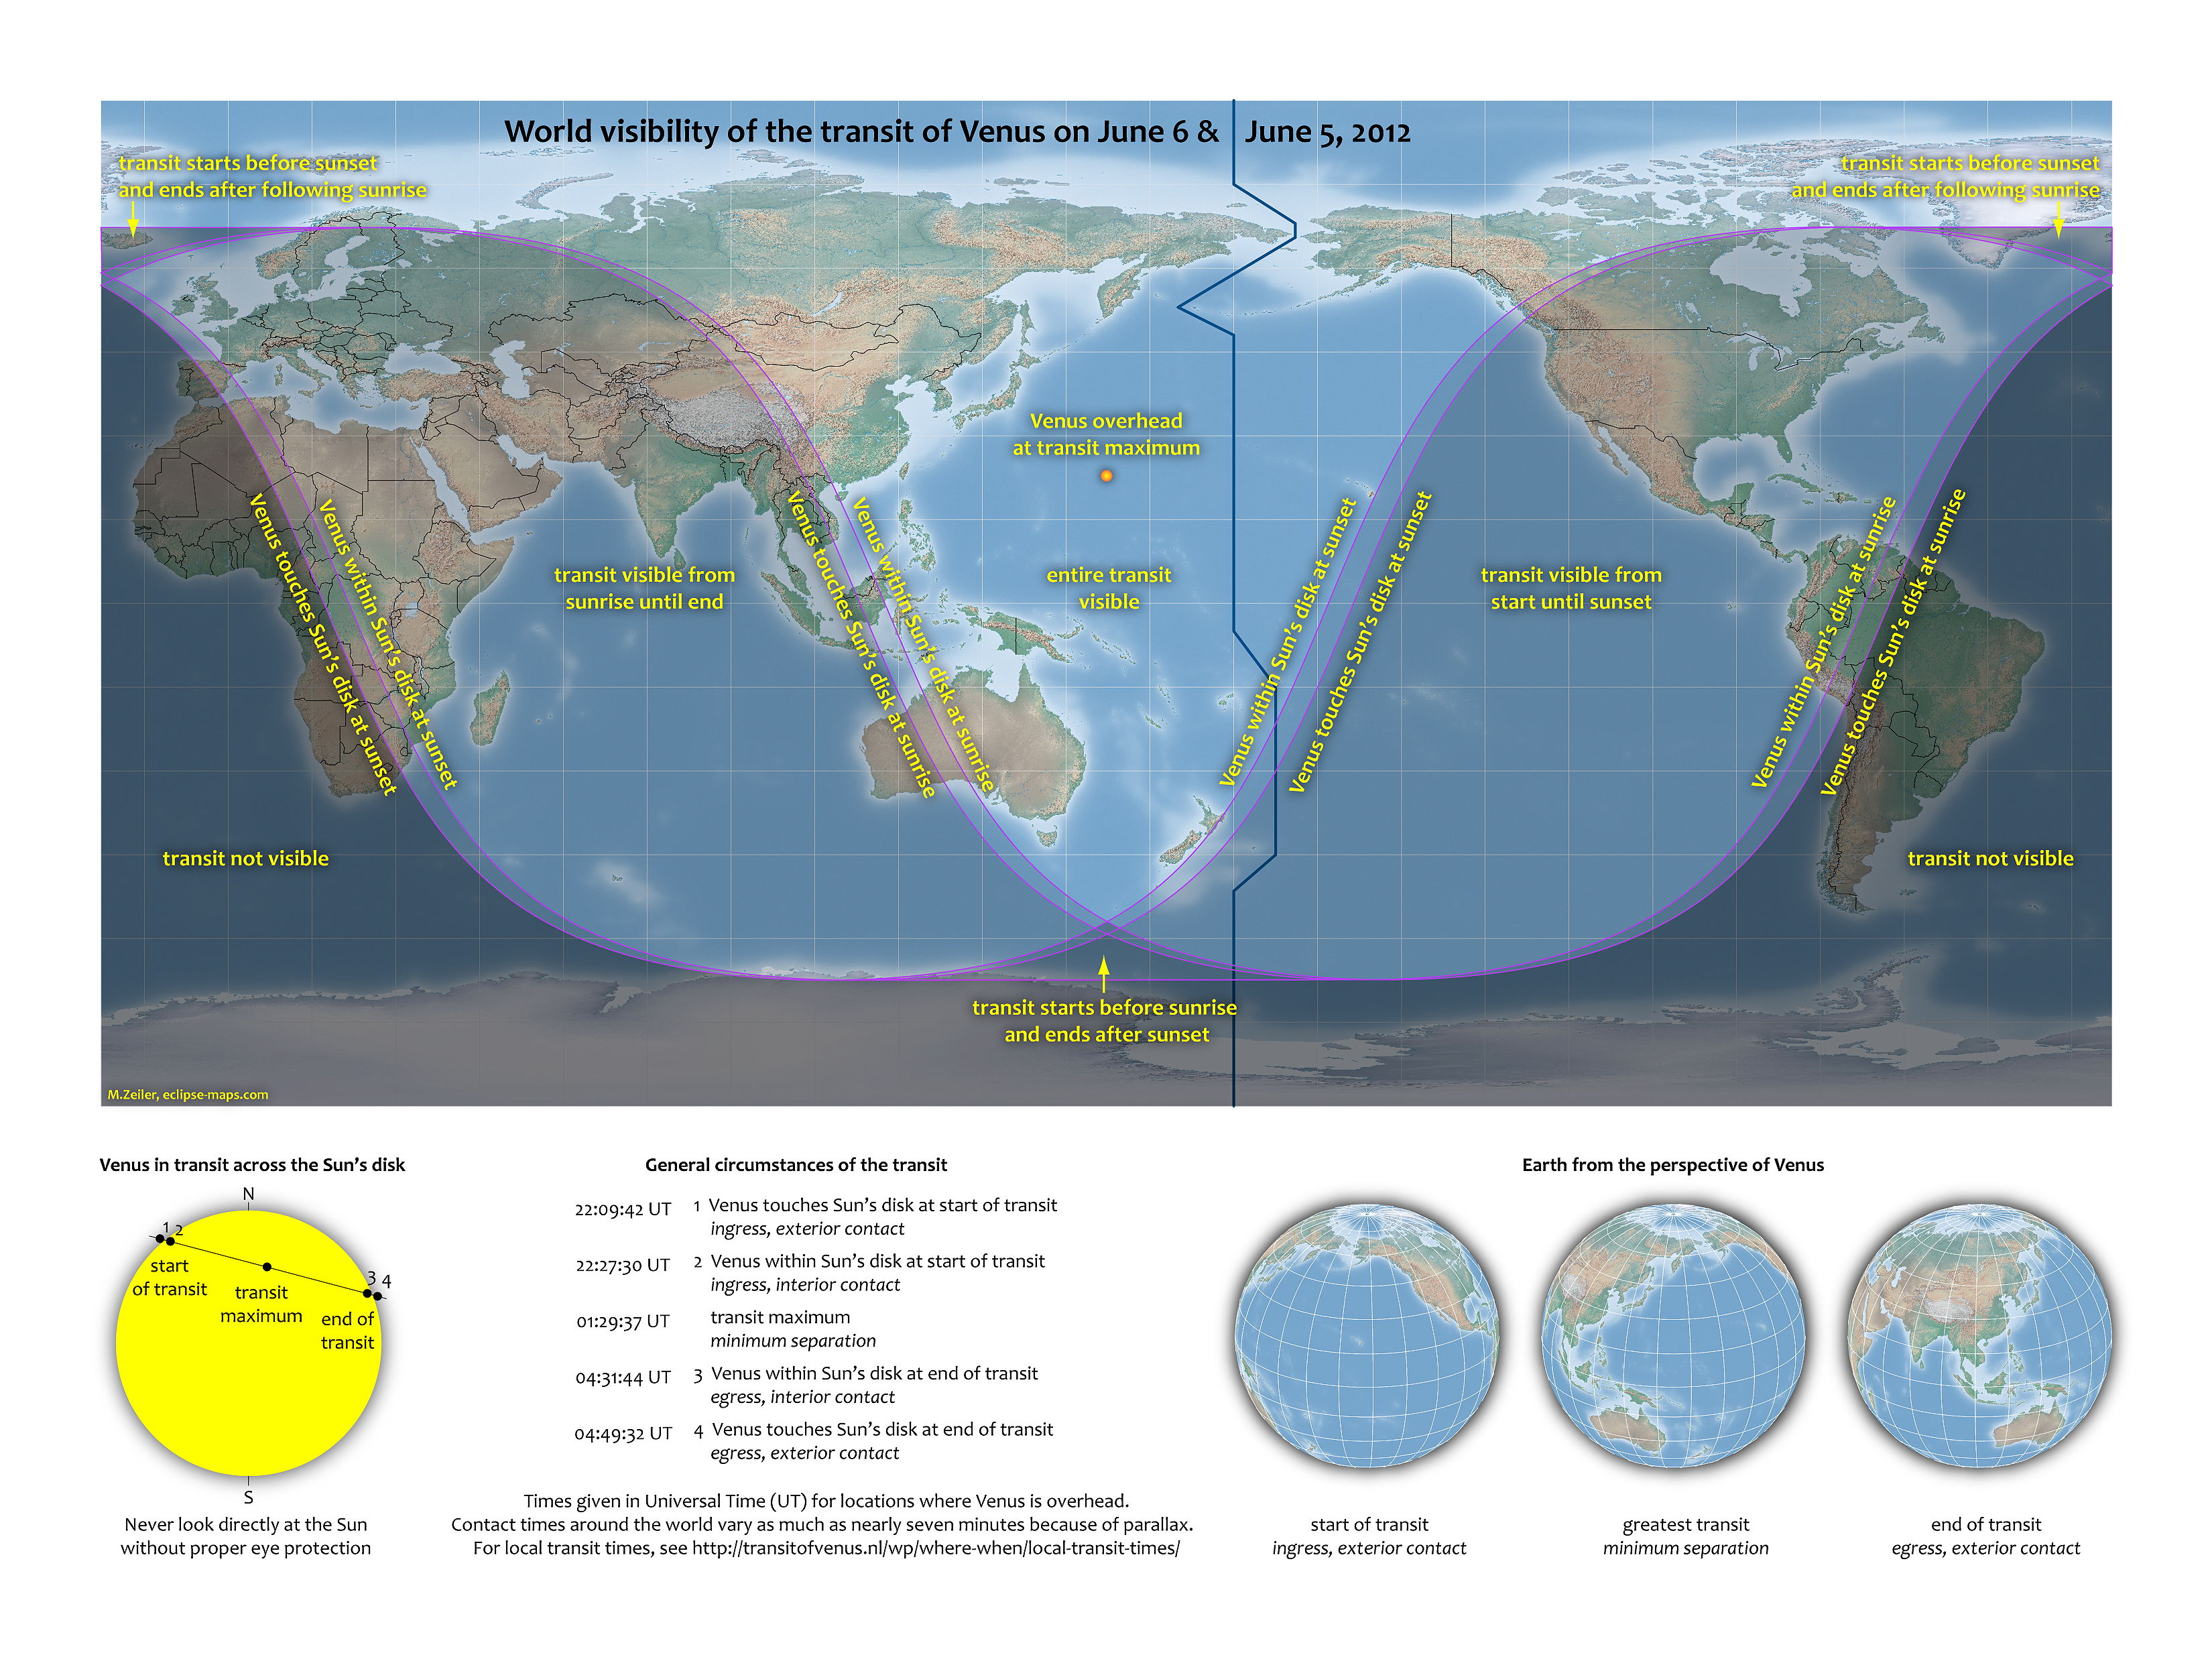 Venus Transit Visibility World Map | NASA on mappa mundi, show a map of brazil, show a map of the mediterranean, show a map of turkey, show a map of england, draw a map of the world, show me the world earth, show a map of mexico, show a map of india, show a map of new york, show a map europe, topographic map, thematic map, show a map of japan, show me a map, show a map of asia, show a map of africa, show a map of egypt, a physical map of the world, show a globe of the world, show a map of north america, show a map of usa, show a map of sweden,